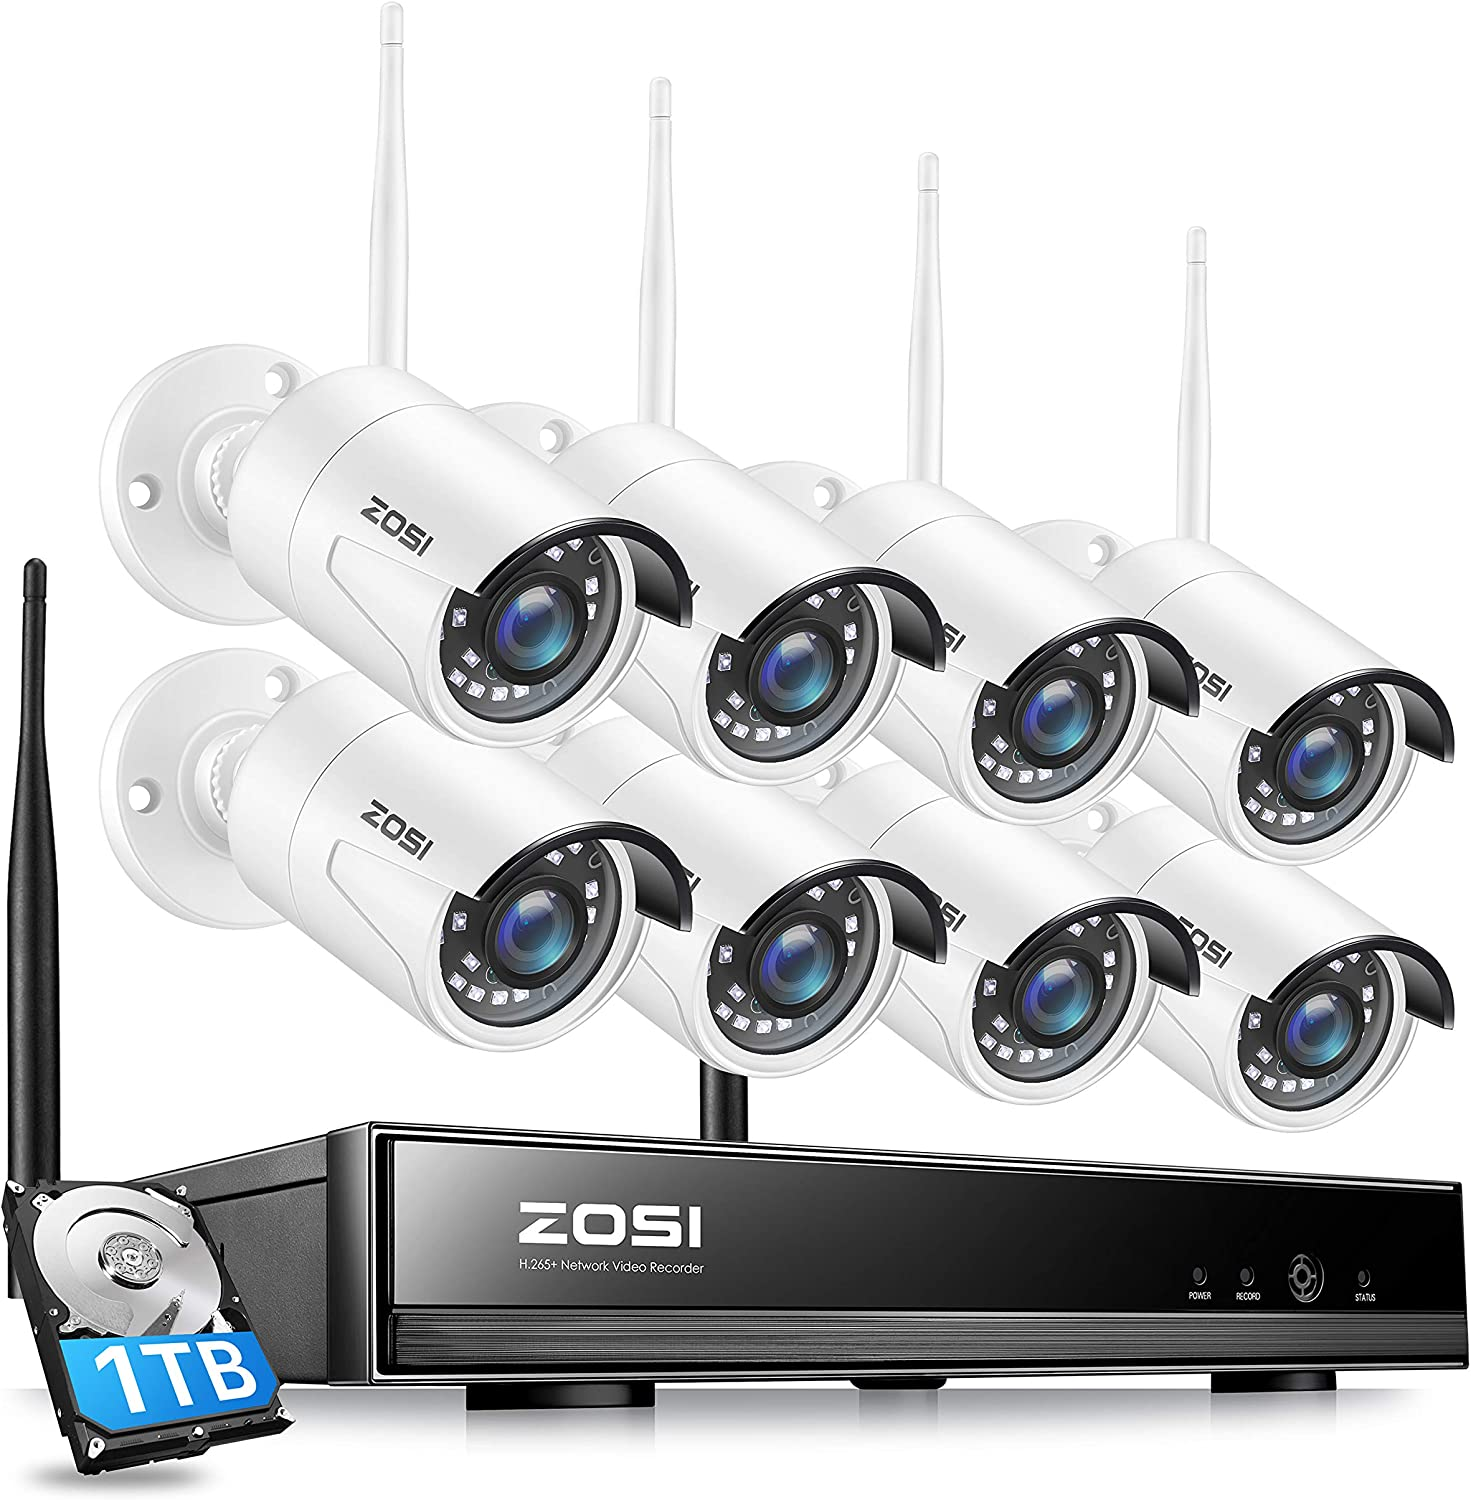 ZOSI 1080P Wireless Security Cameras System with 1TB Hard Drive, Night Vision, Remote Access